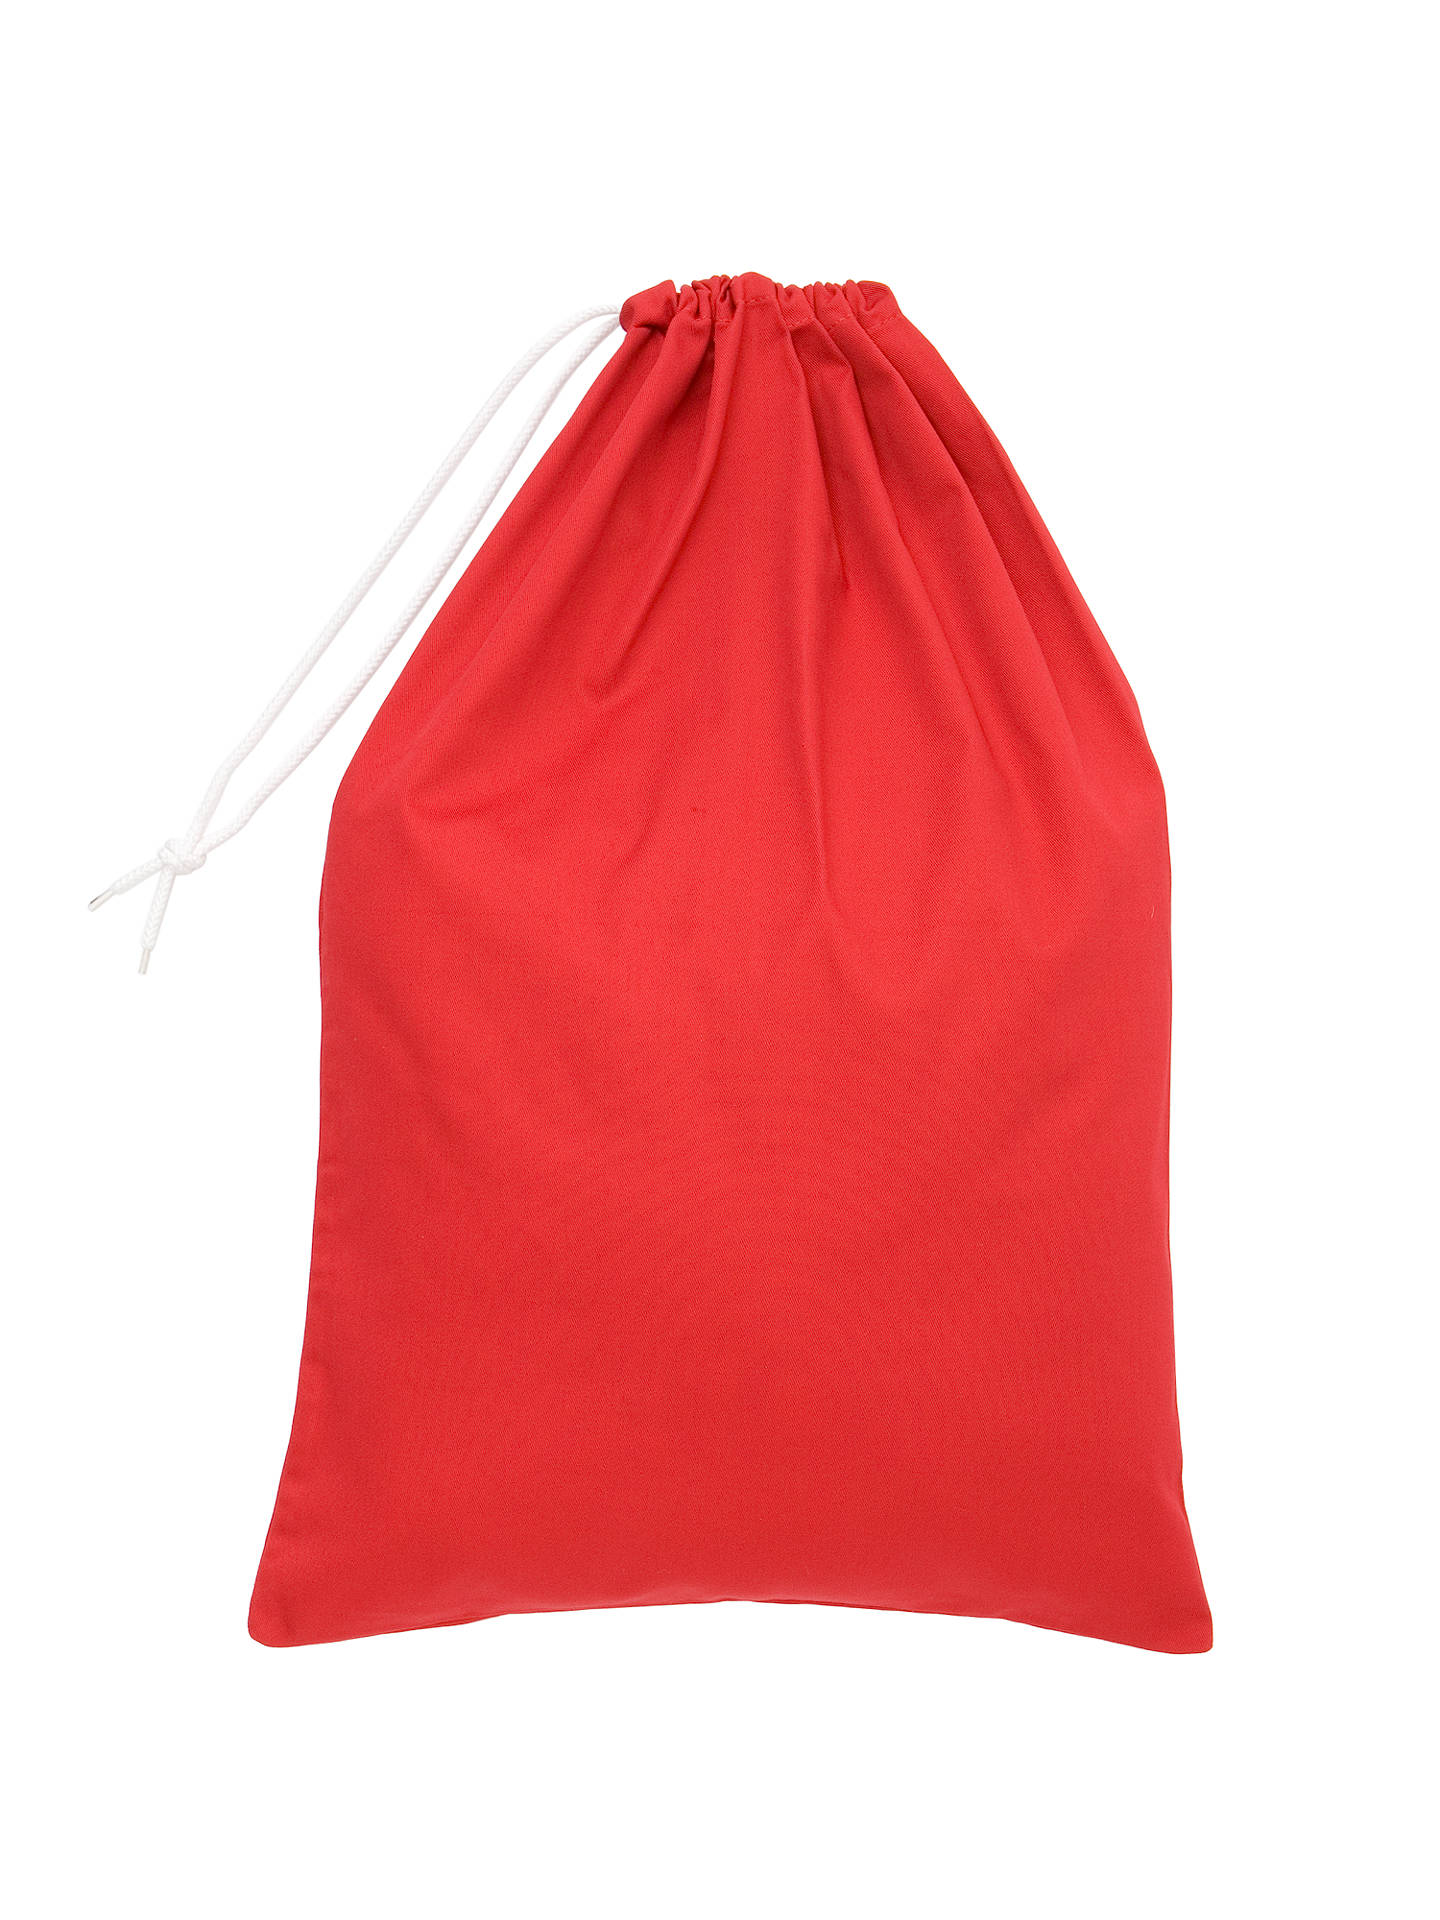 School Drawstring Linen Bag Red One Size Online At Johnlewis